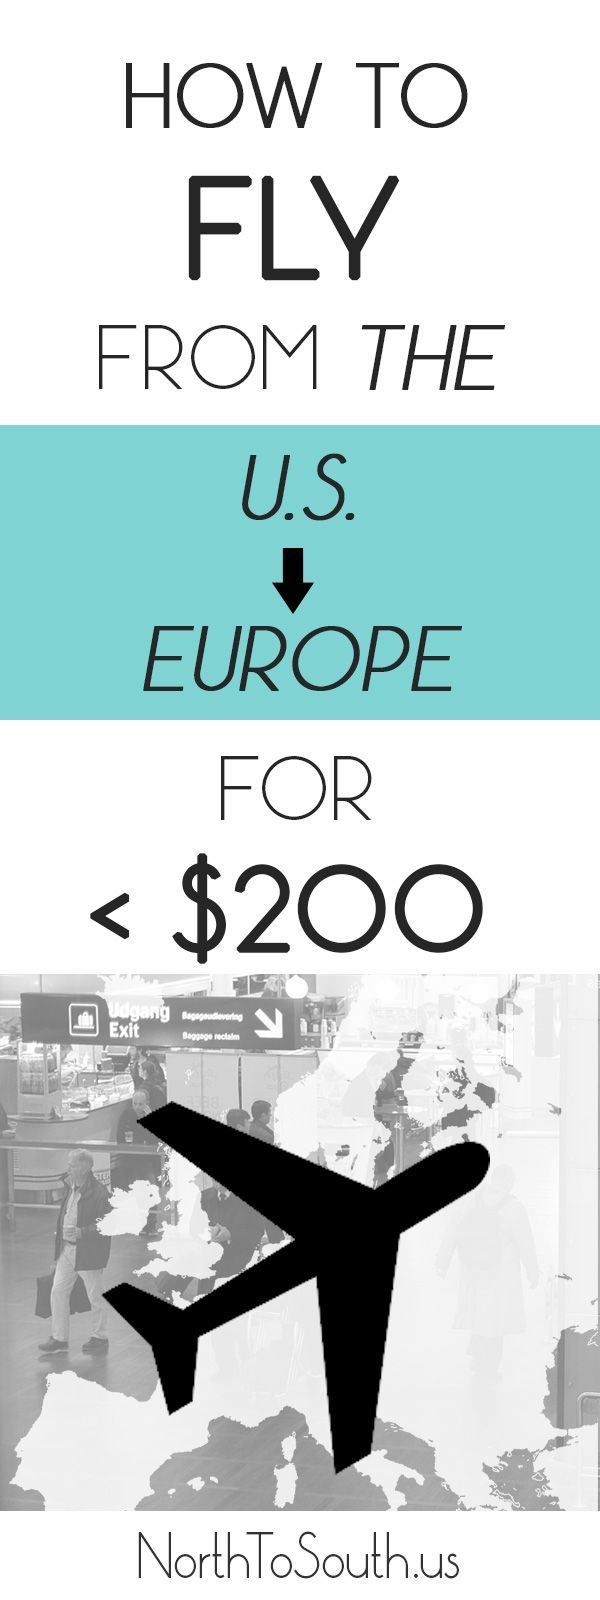 Traveling on the cheap from the U.S. to Europe is quite simple, really. It involves just three things...